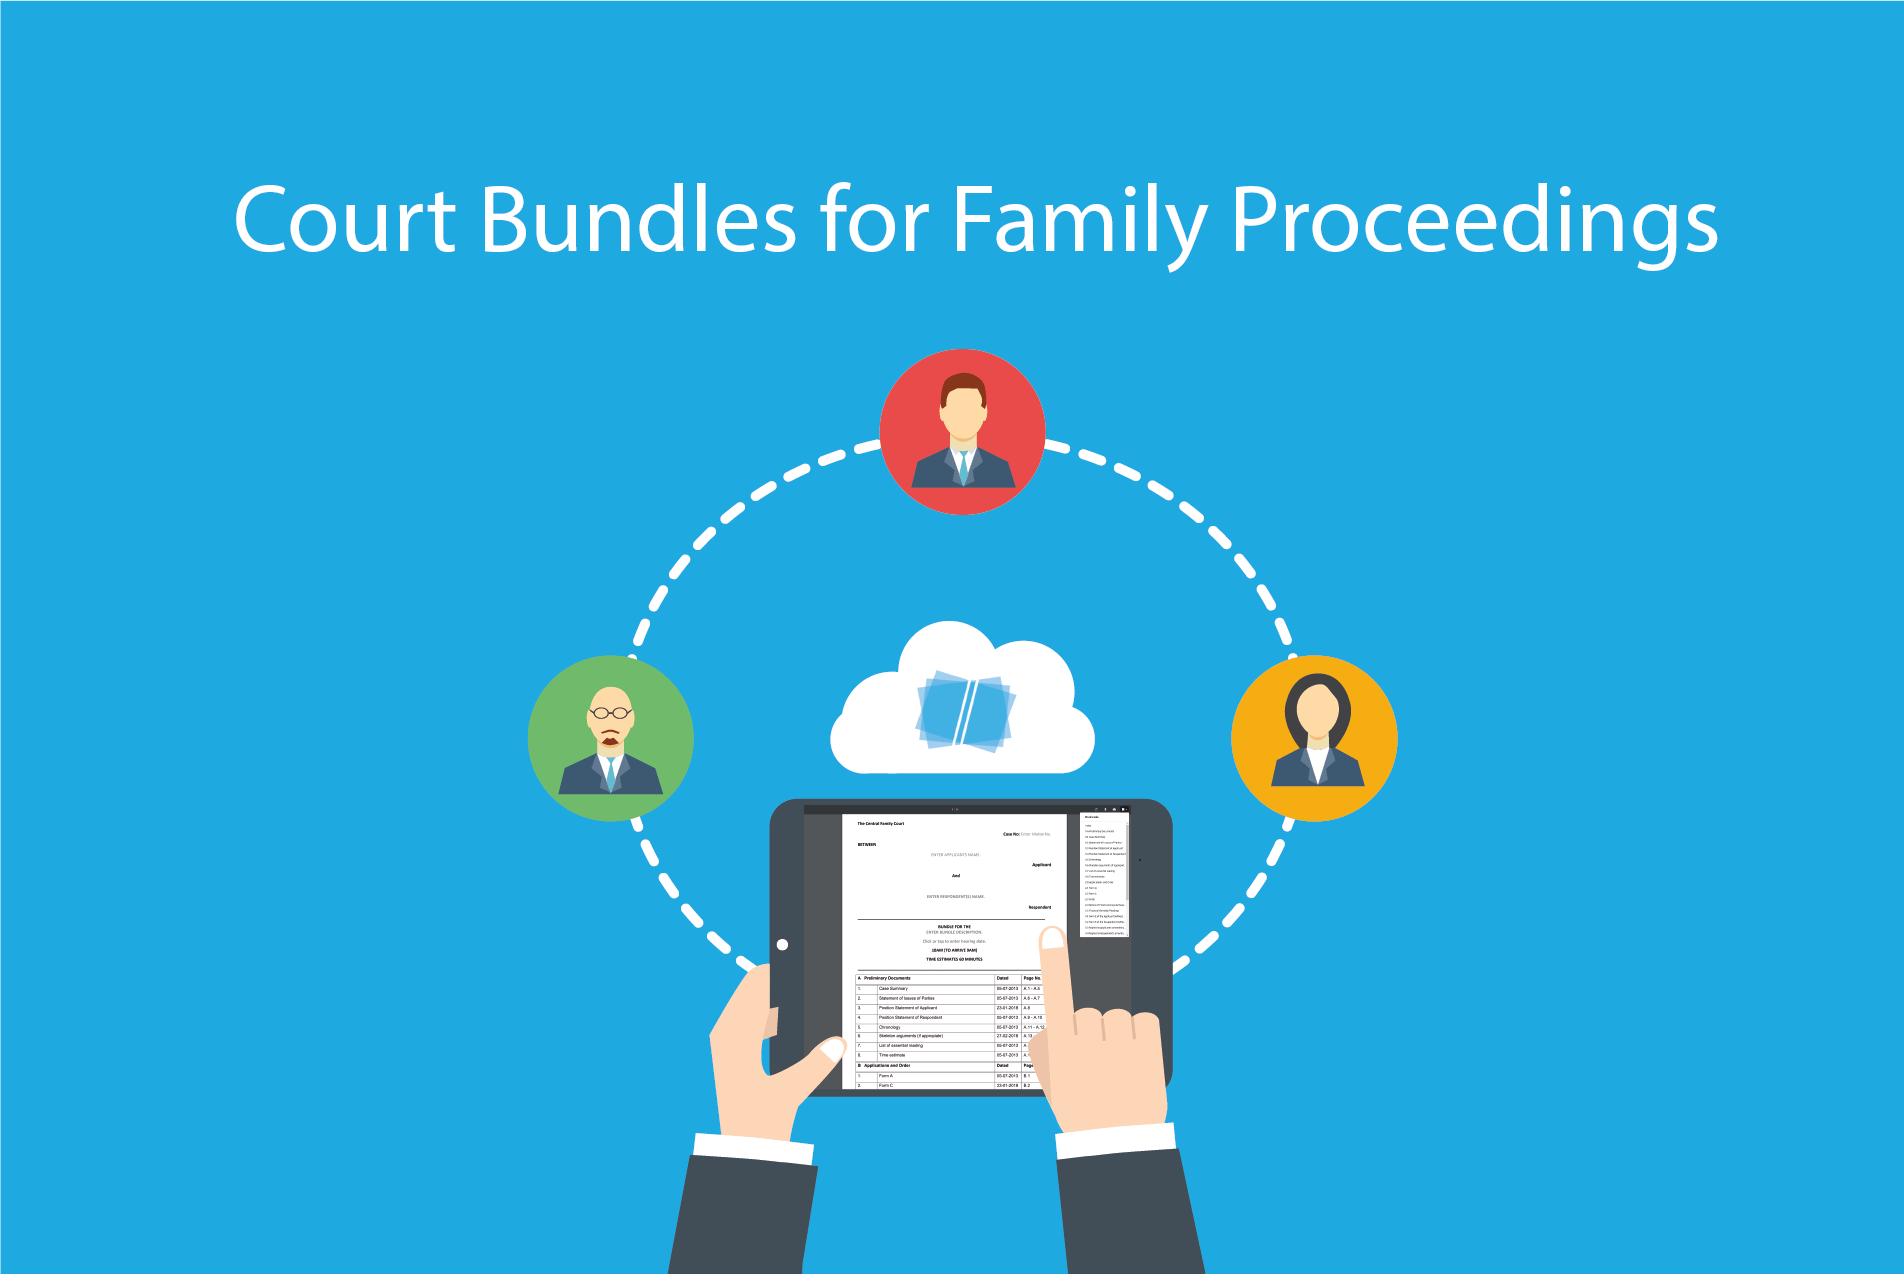 Prepare_Court_Bundle_Family_Proceedings_Practice_Direction_27a.png